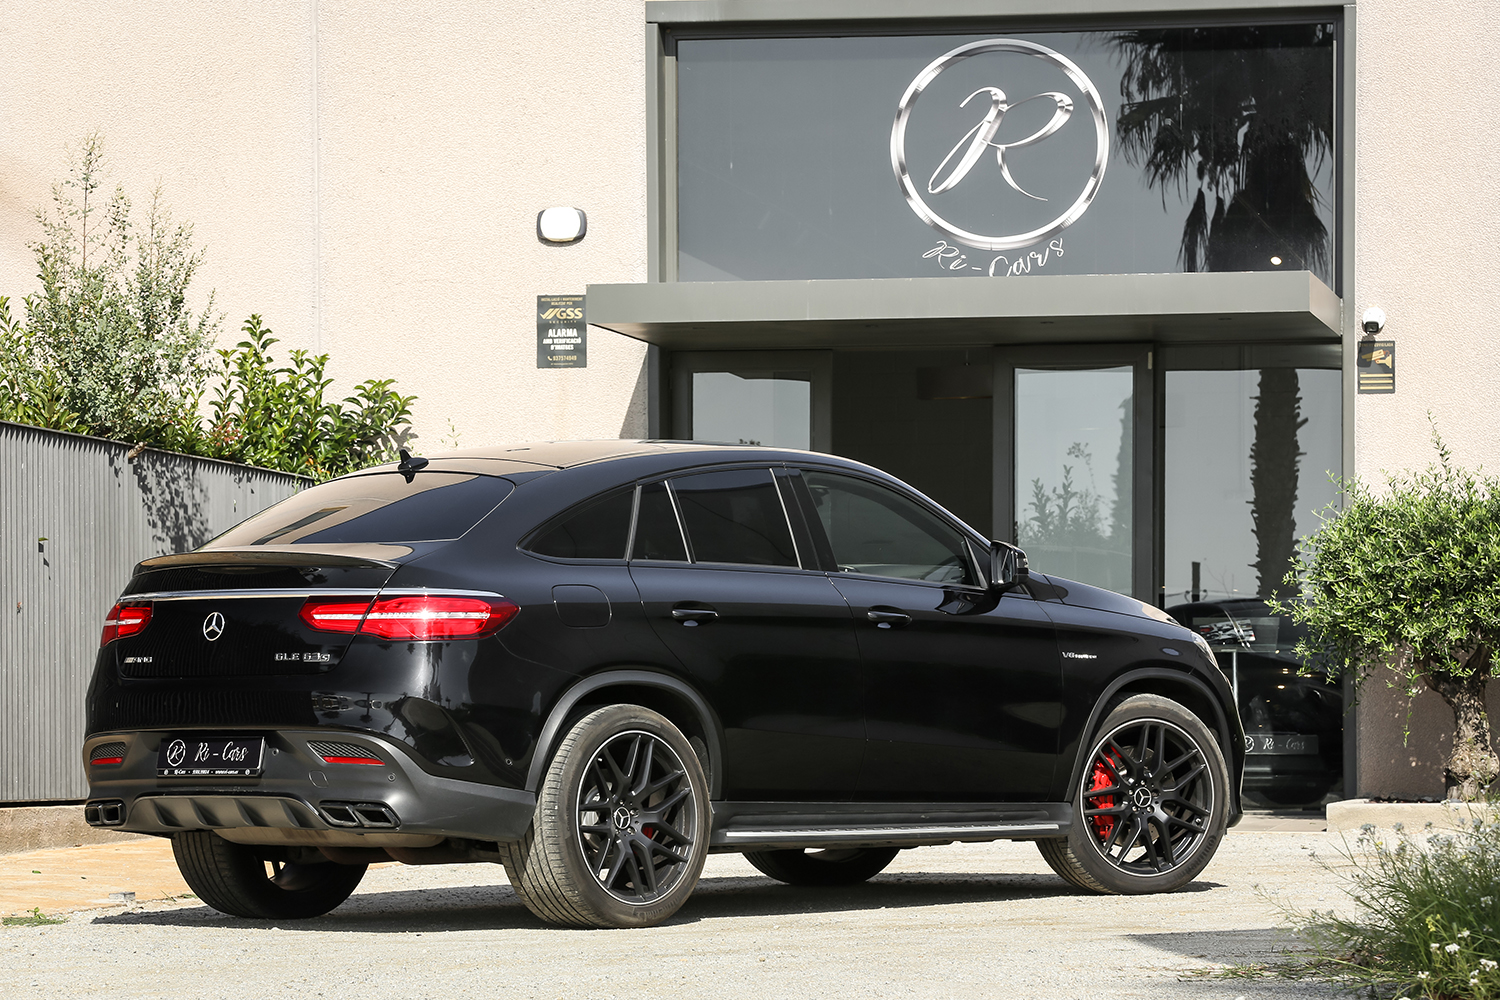 Mercedes - Benz GLE 63 AMG S